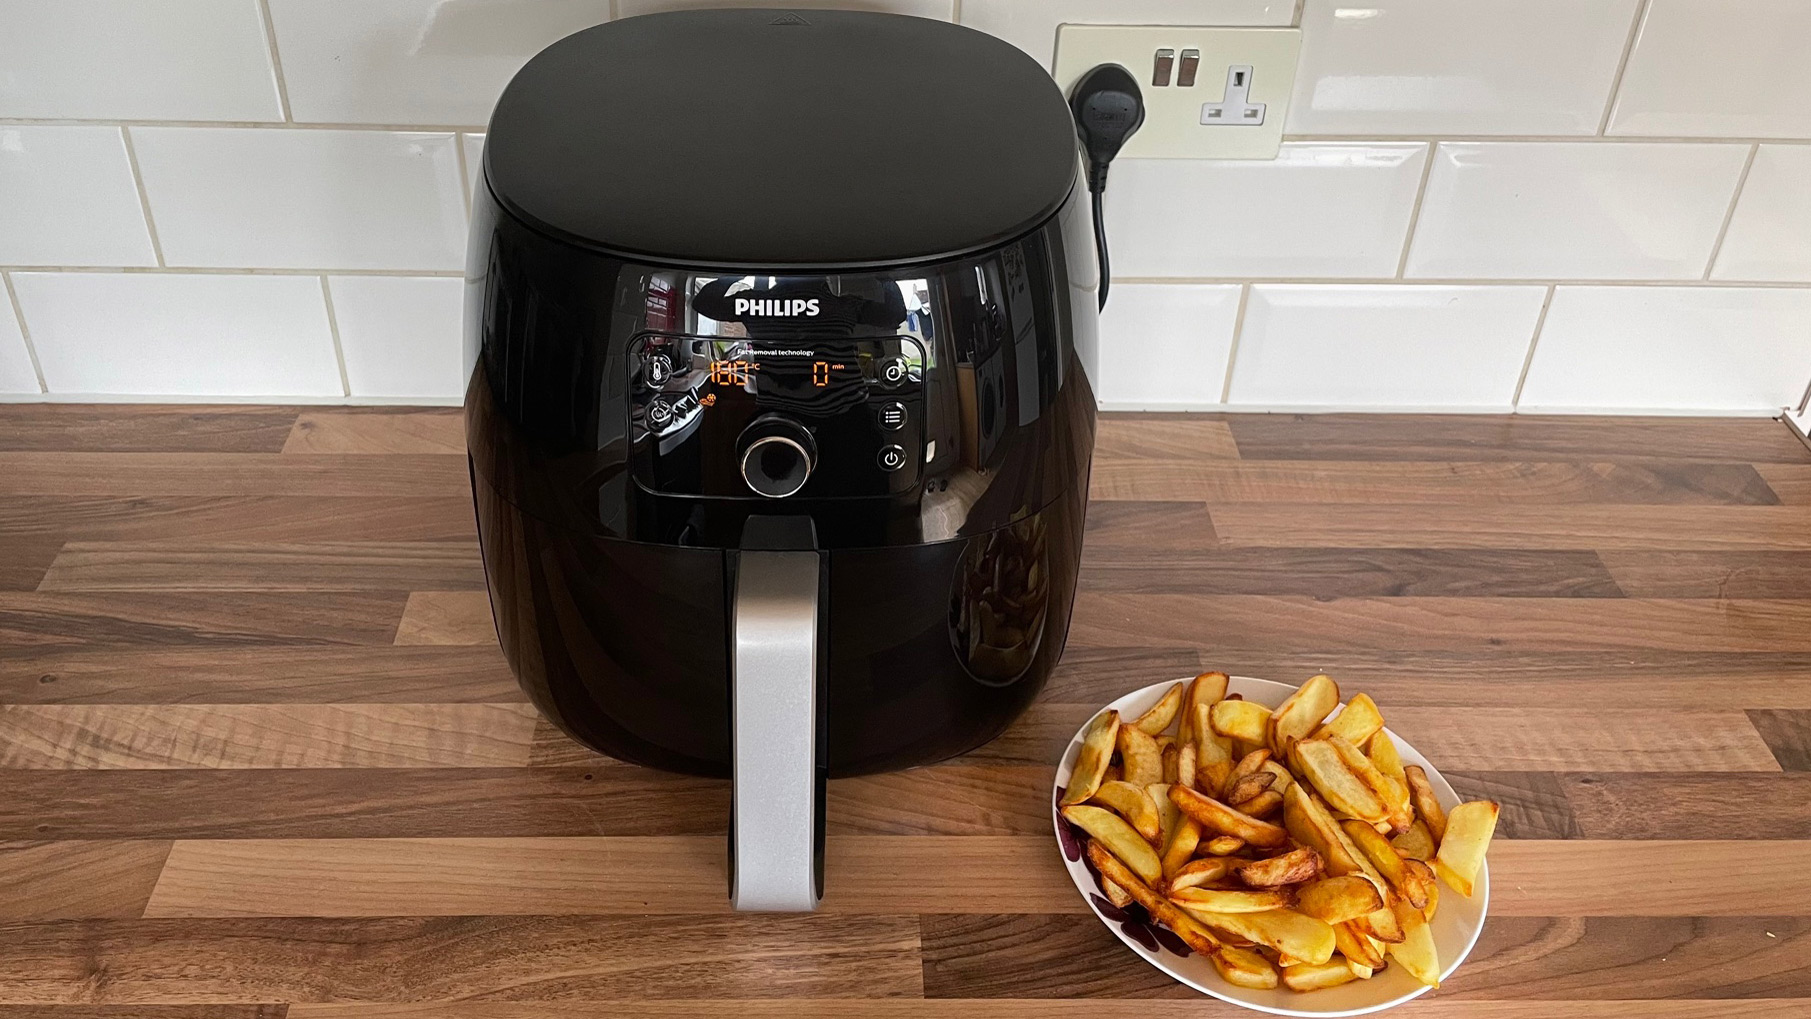 Philips Airfryer XXL HD9650/99 next to a plate of chips that were cooked in the air fryer